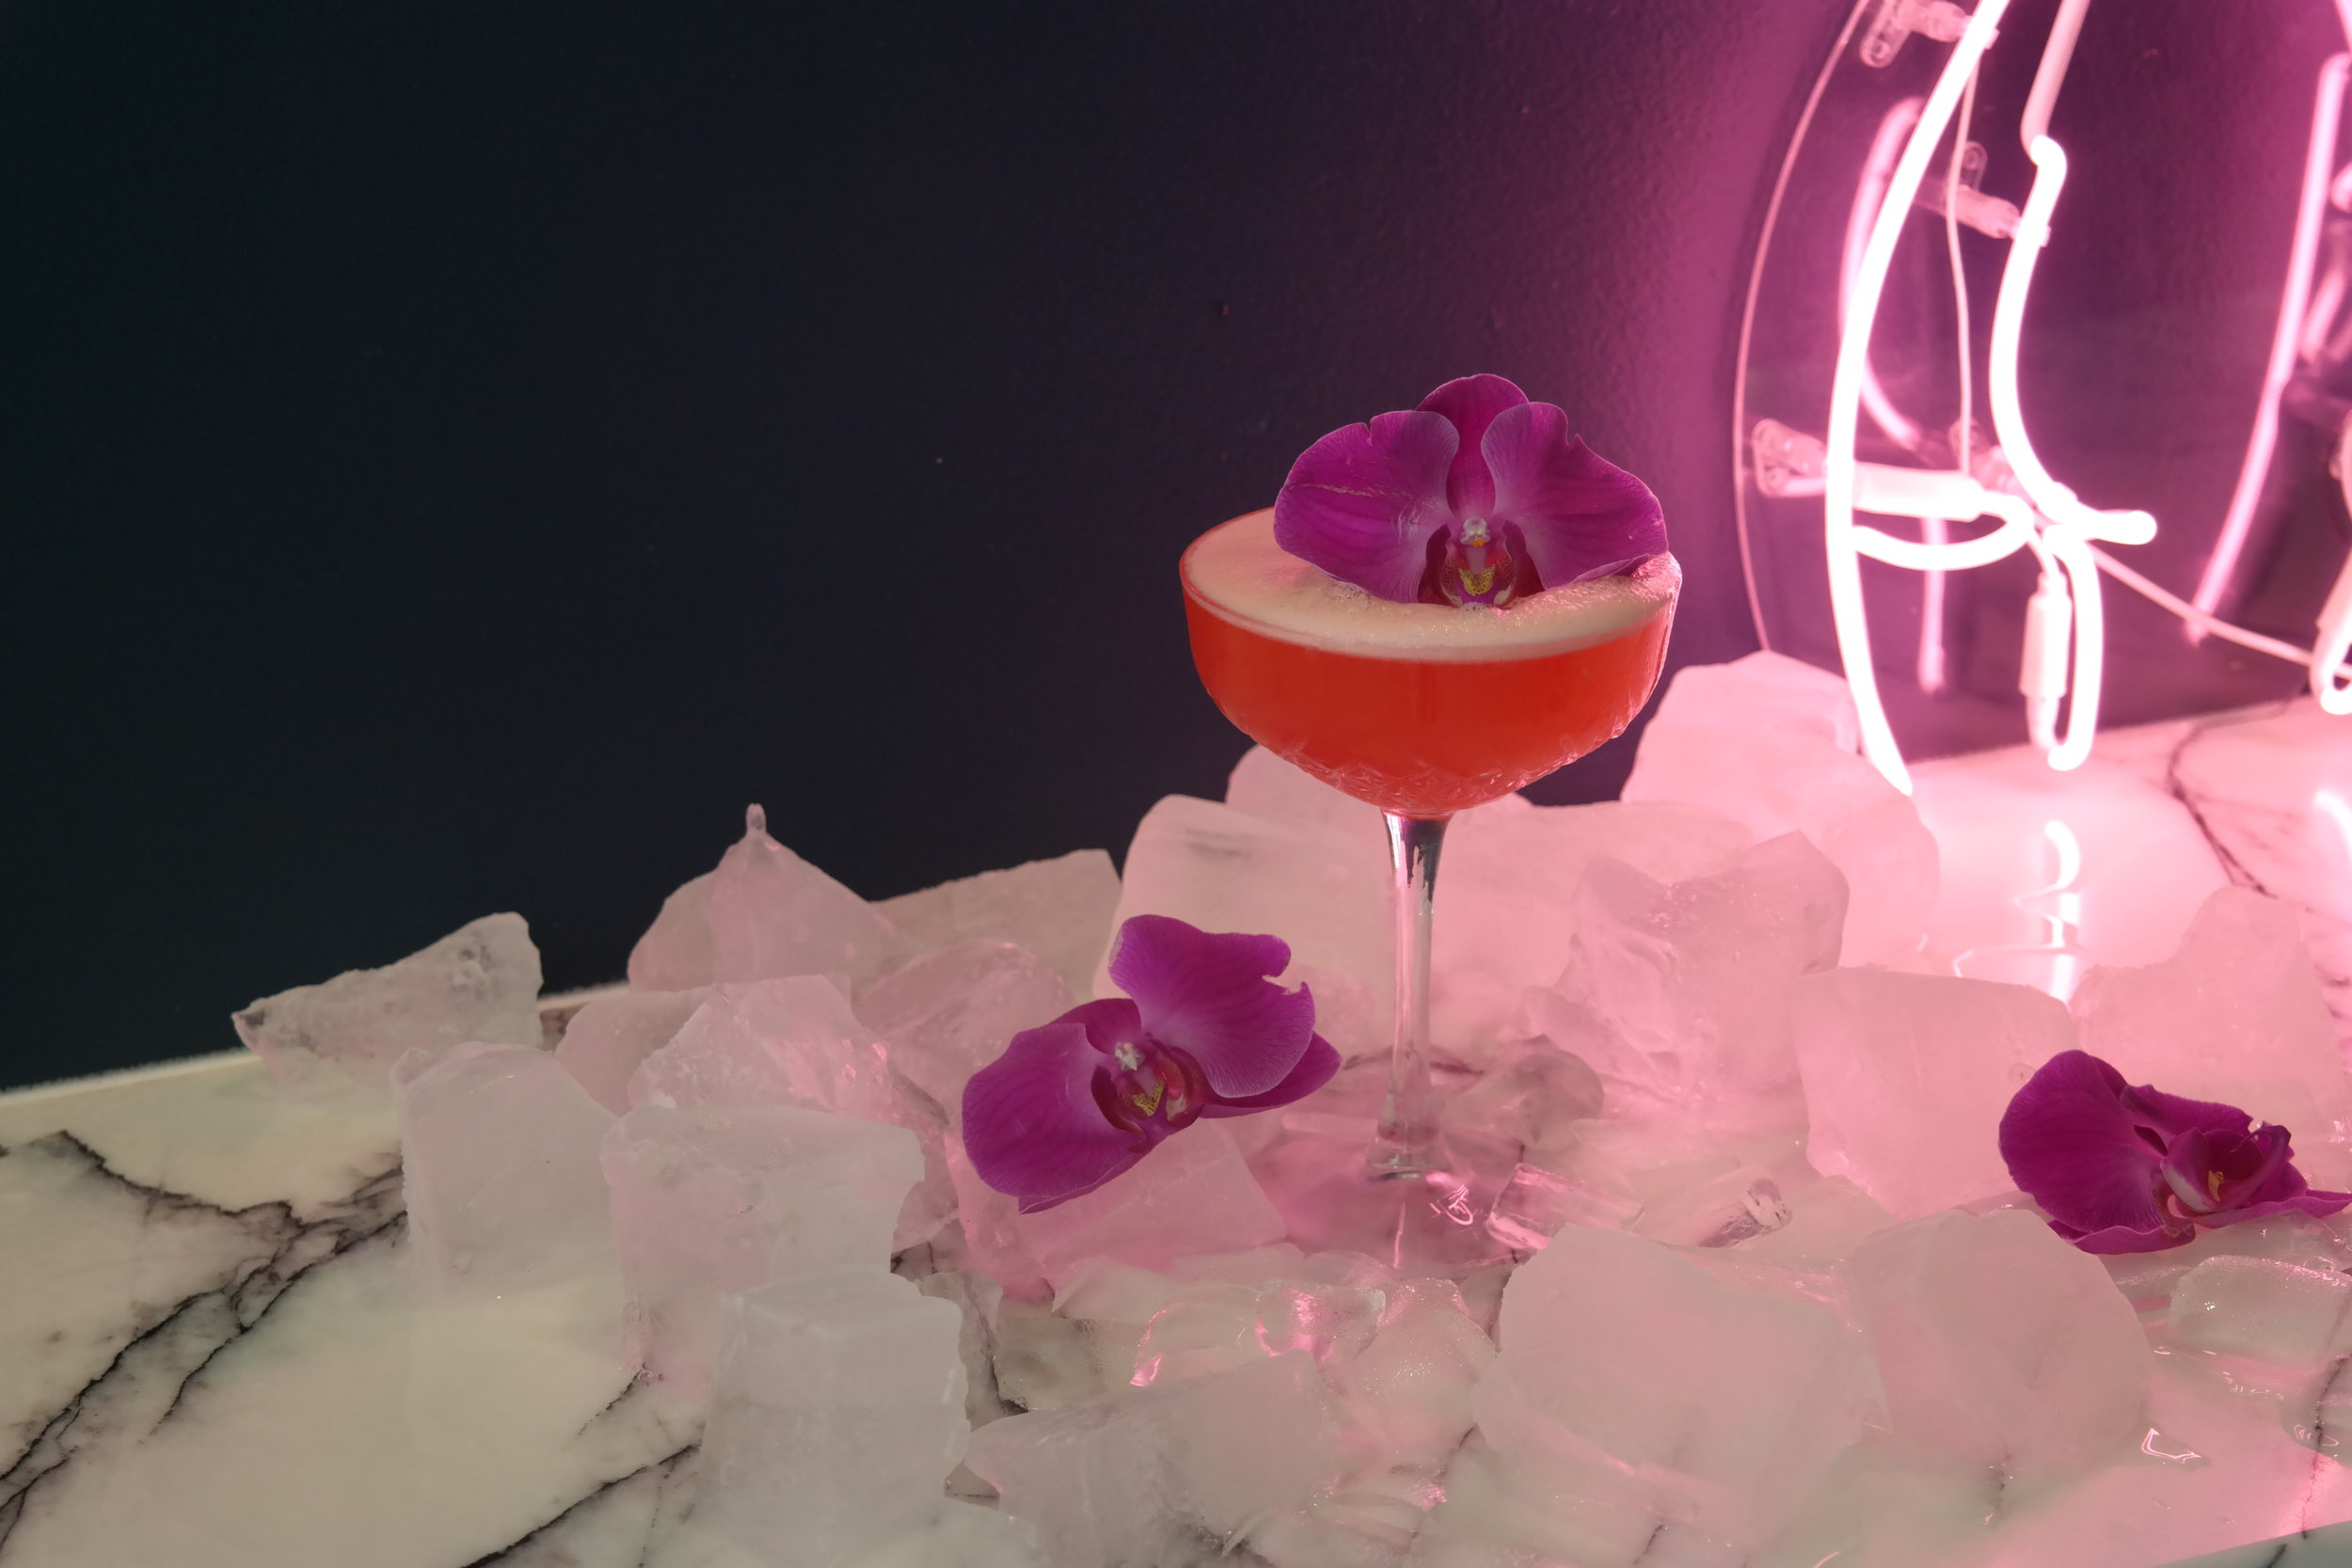 The floral cocktail